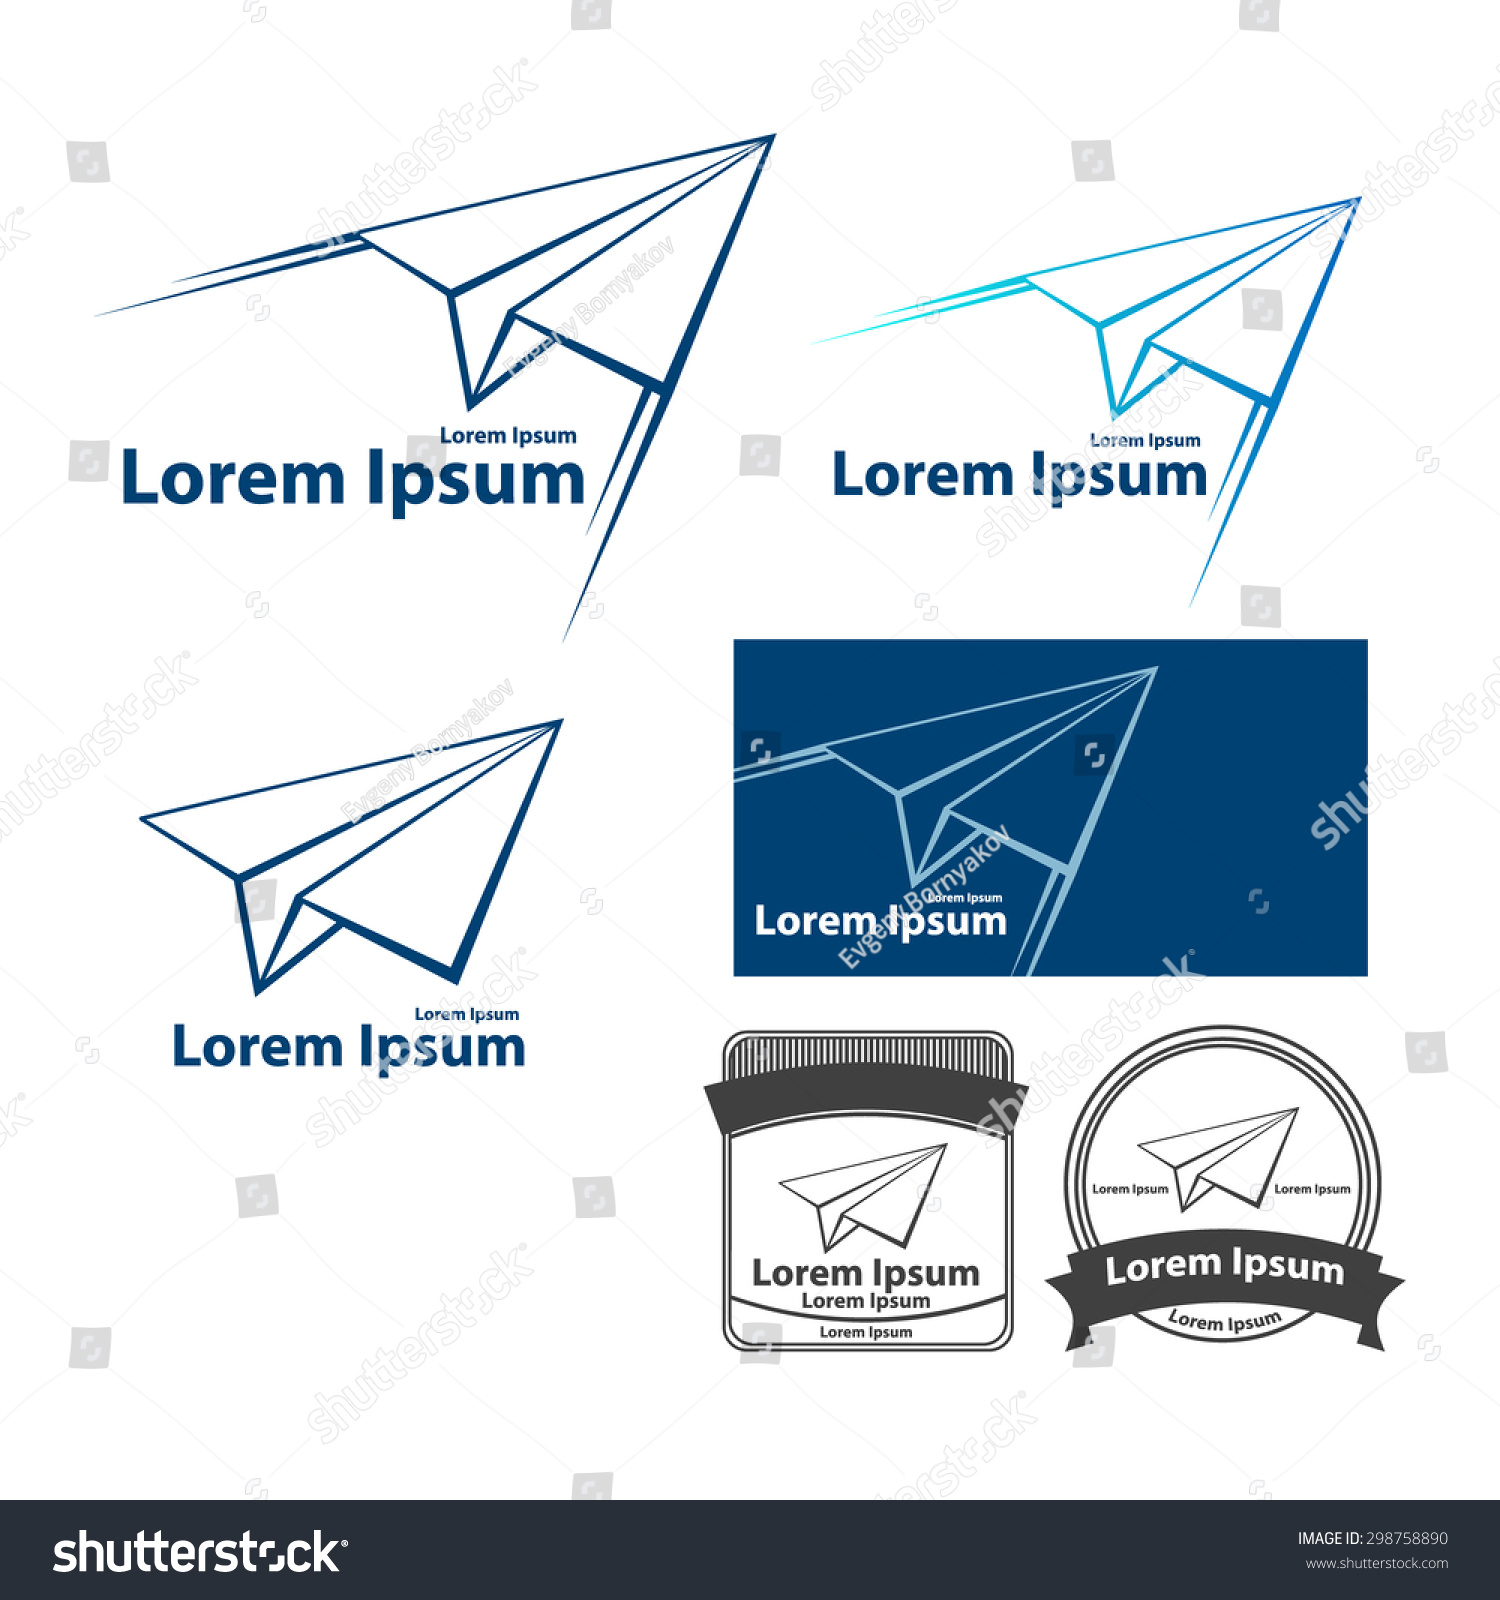 Paper plane flying logo vector design stock vector 298758890 paper plane flying logo vector design template airline tickets logo airplane aviation company logotype pronofoot35fo Images